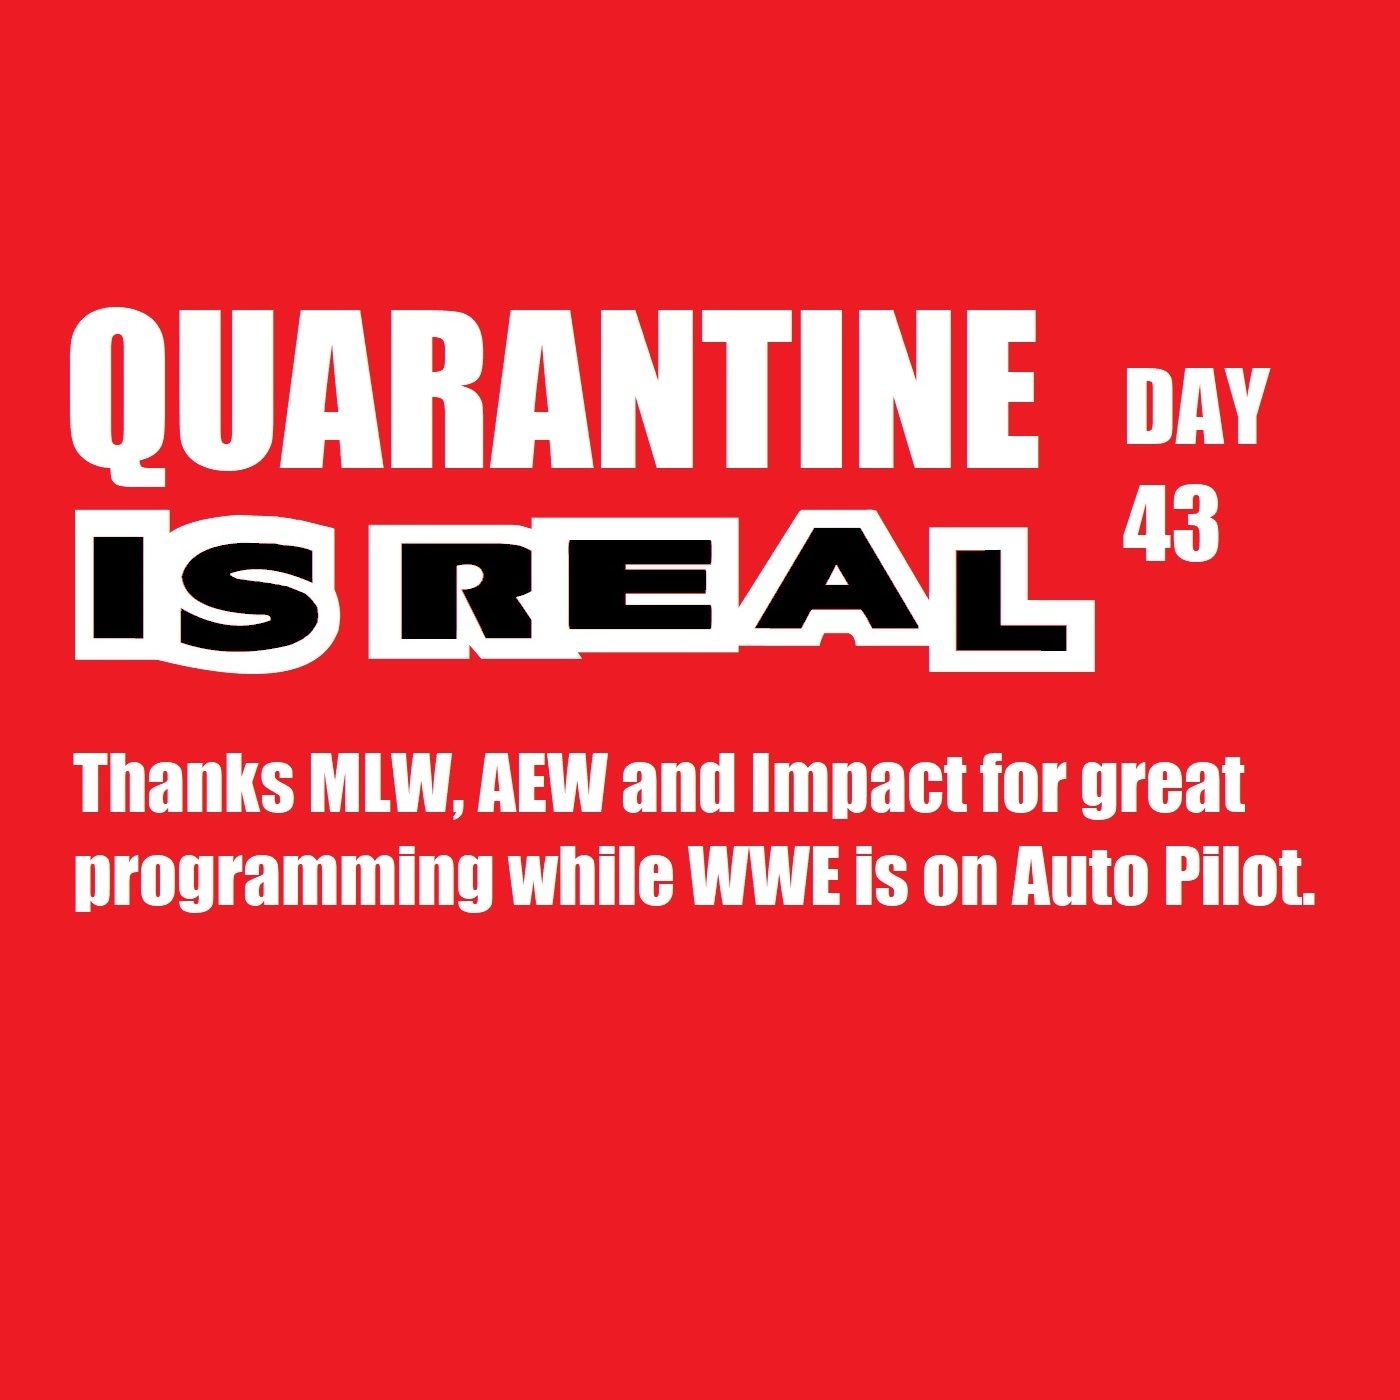 Quarantine Is Real Day 43: Thanks MLW, AEW and Impact while WWE is on Auto Pilot. KOP043020-530